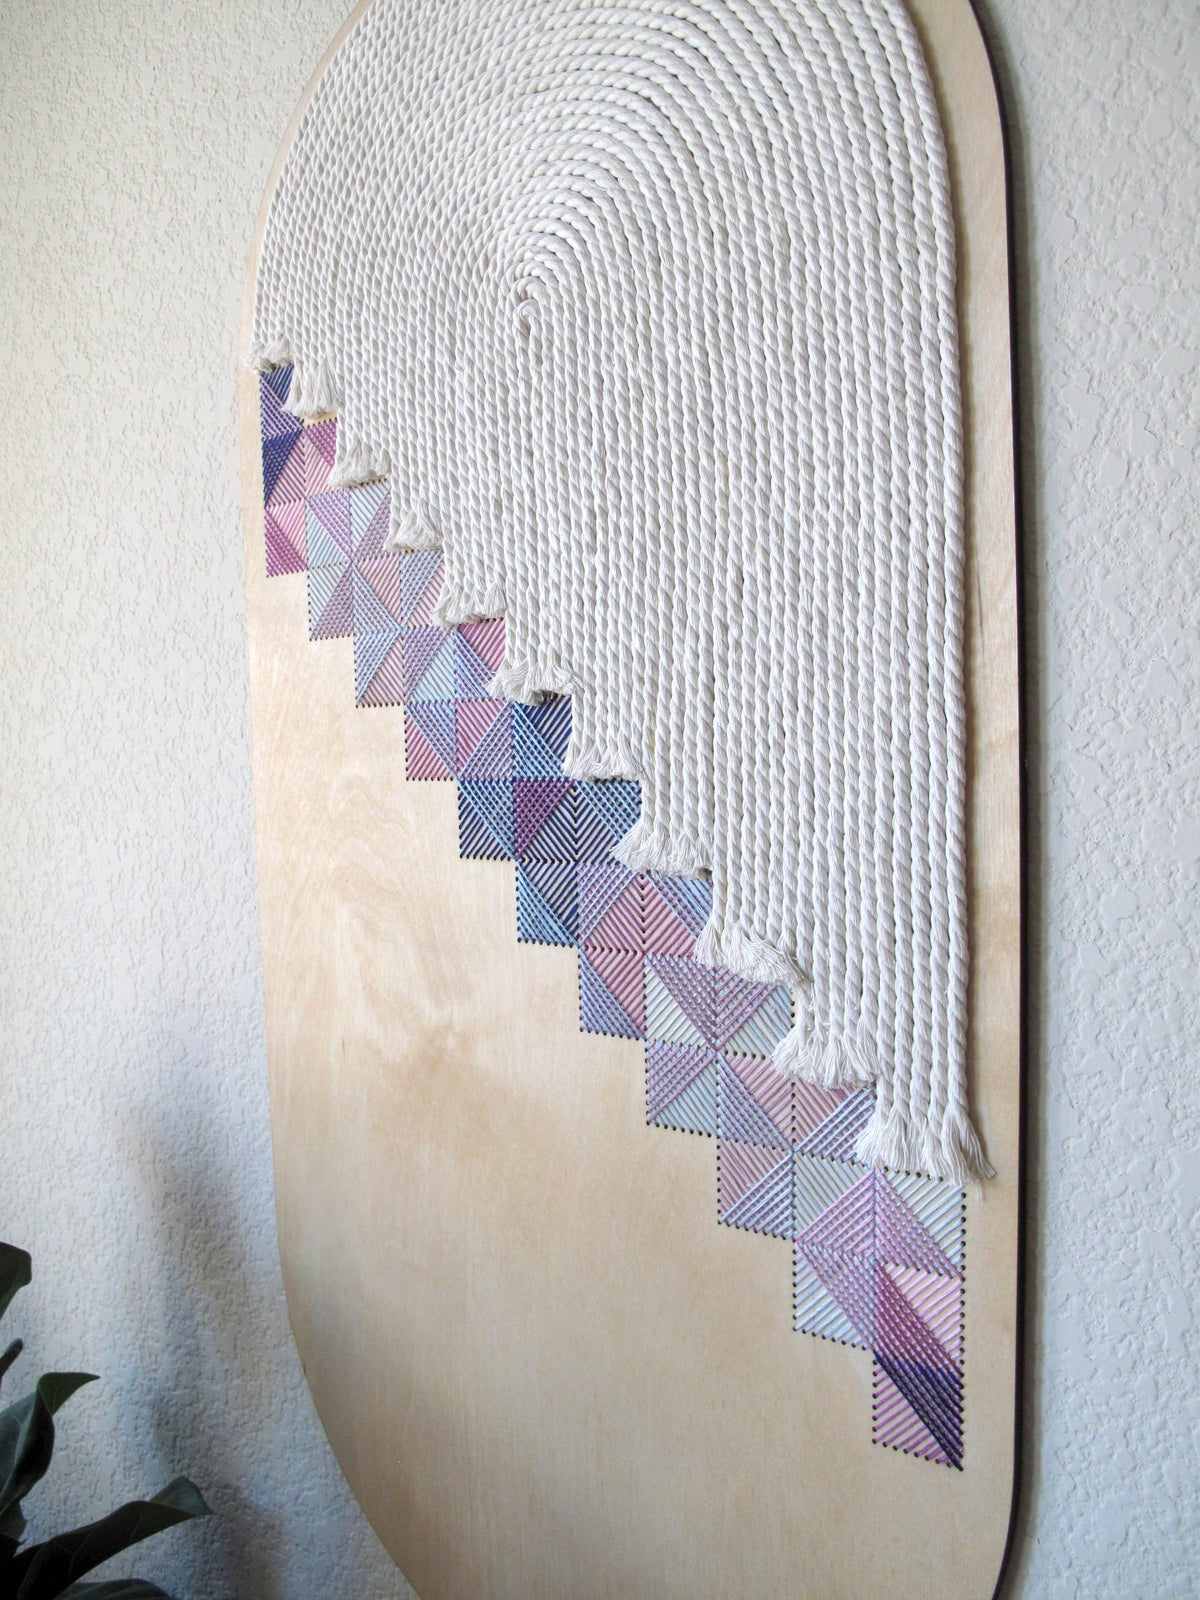 Curved Crosshatch Wall Art